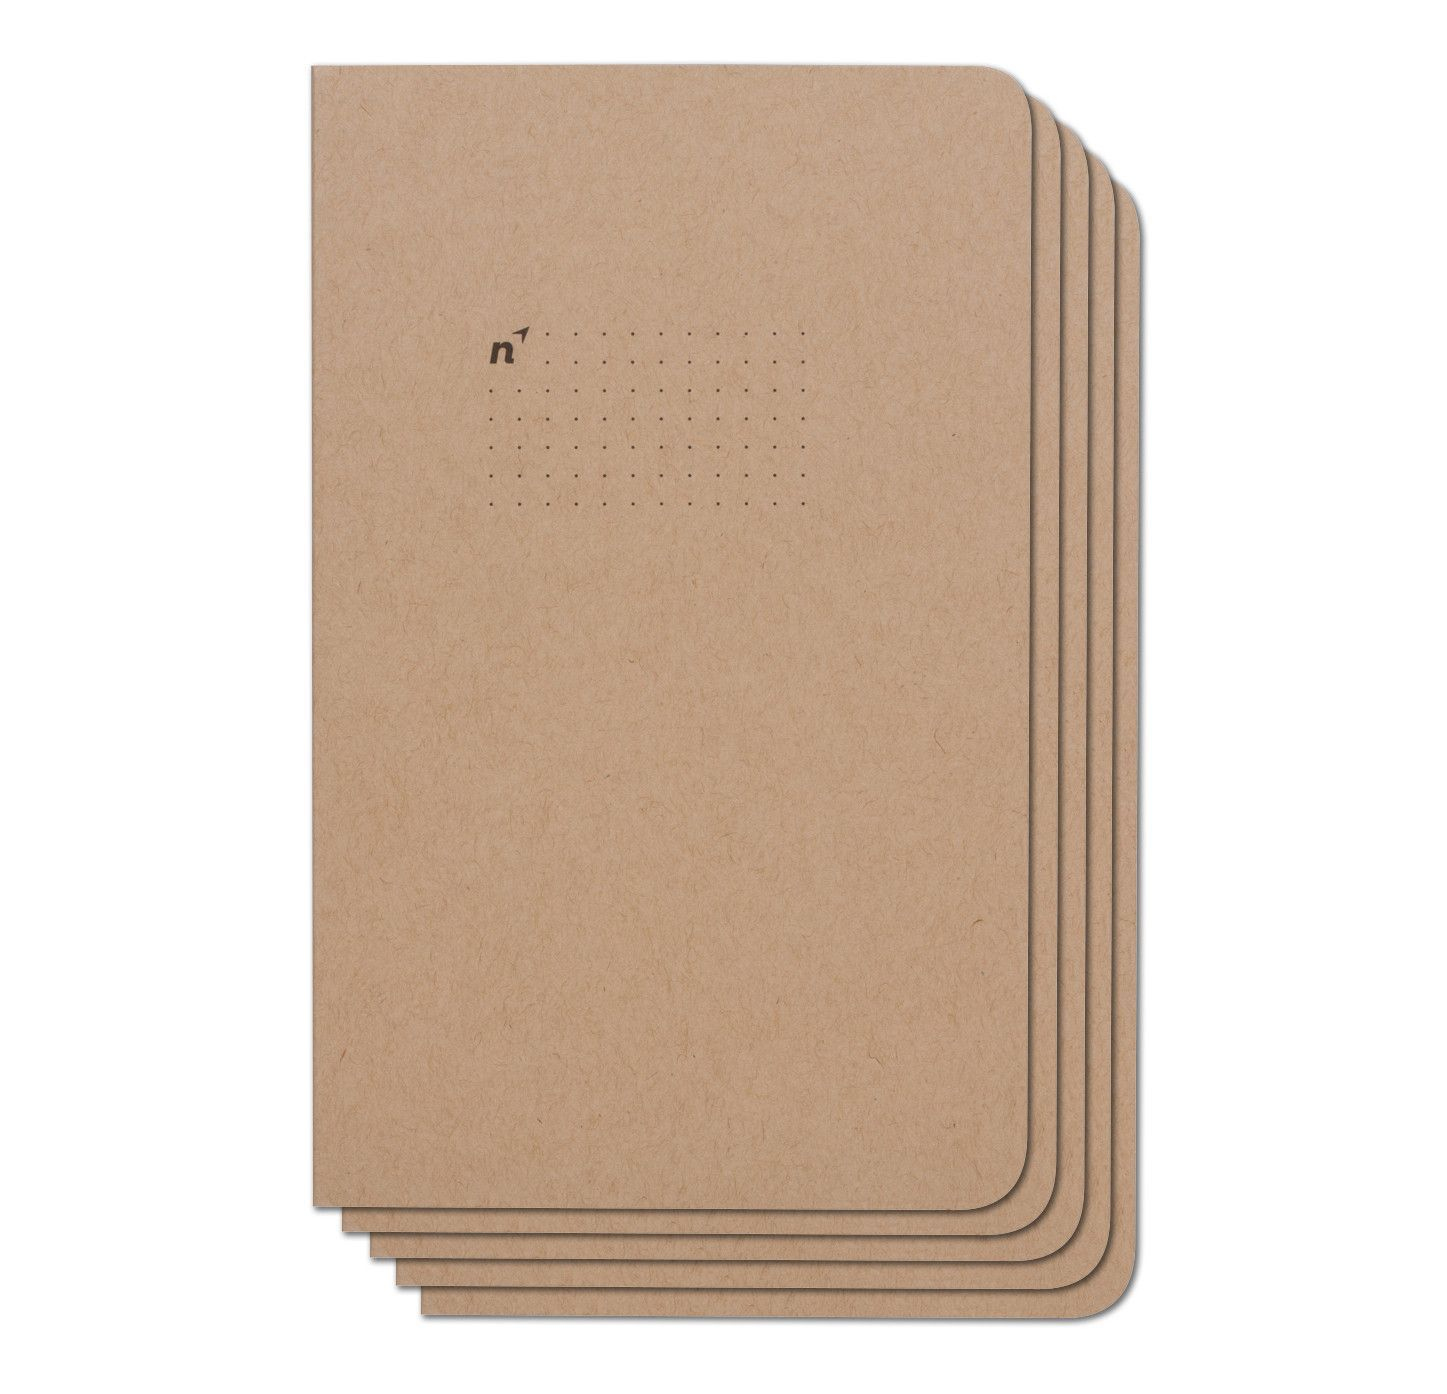 Dots 5 Pack Of 5x8 Notebooks 96 Pages Notebook Journal